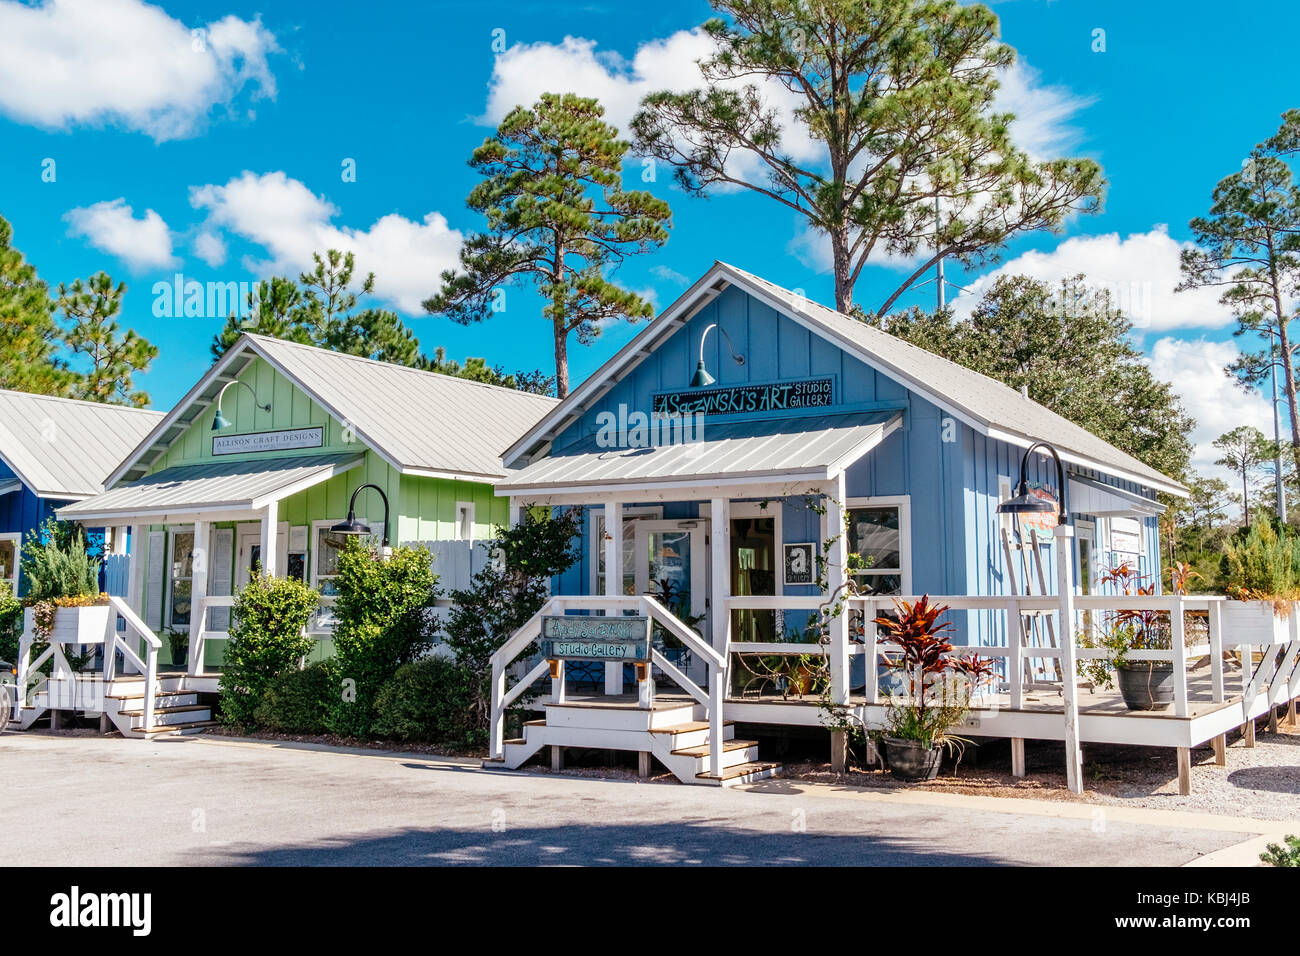 Small colorful shops near Grayton Beach a popular tourist destination on the Florida, USA, Gulf of Mexico, panhandleStock Photo